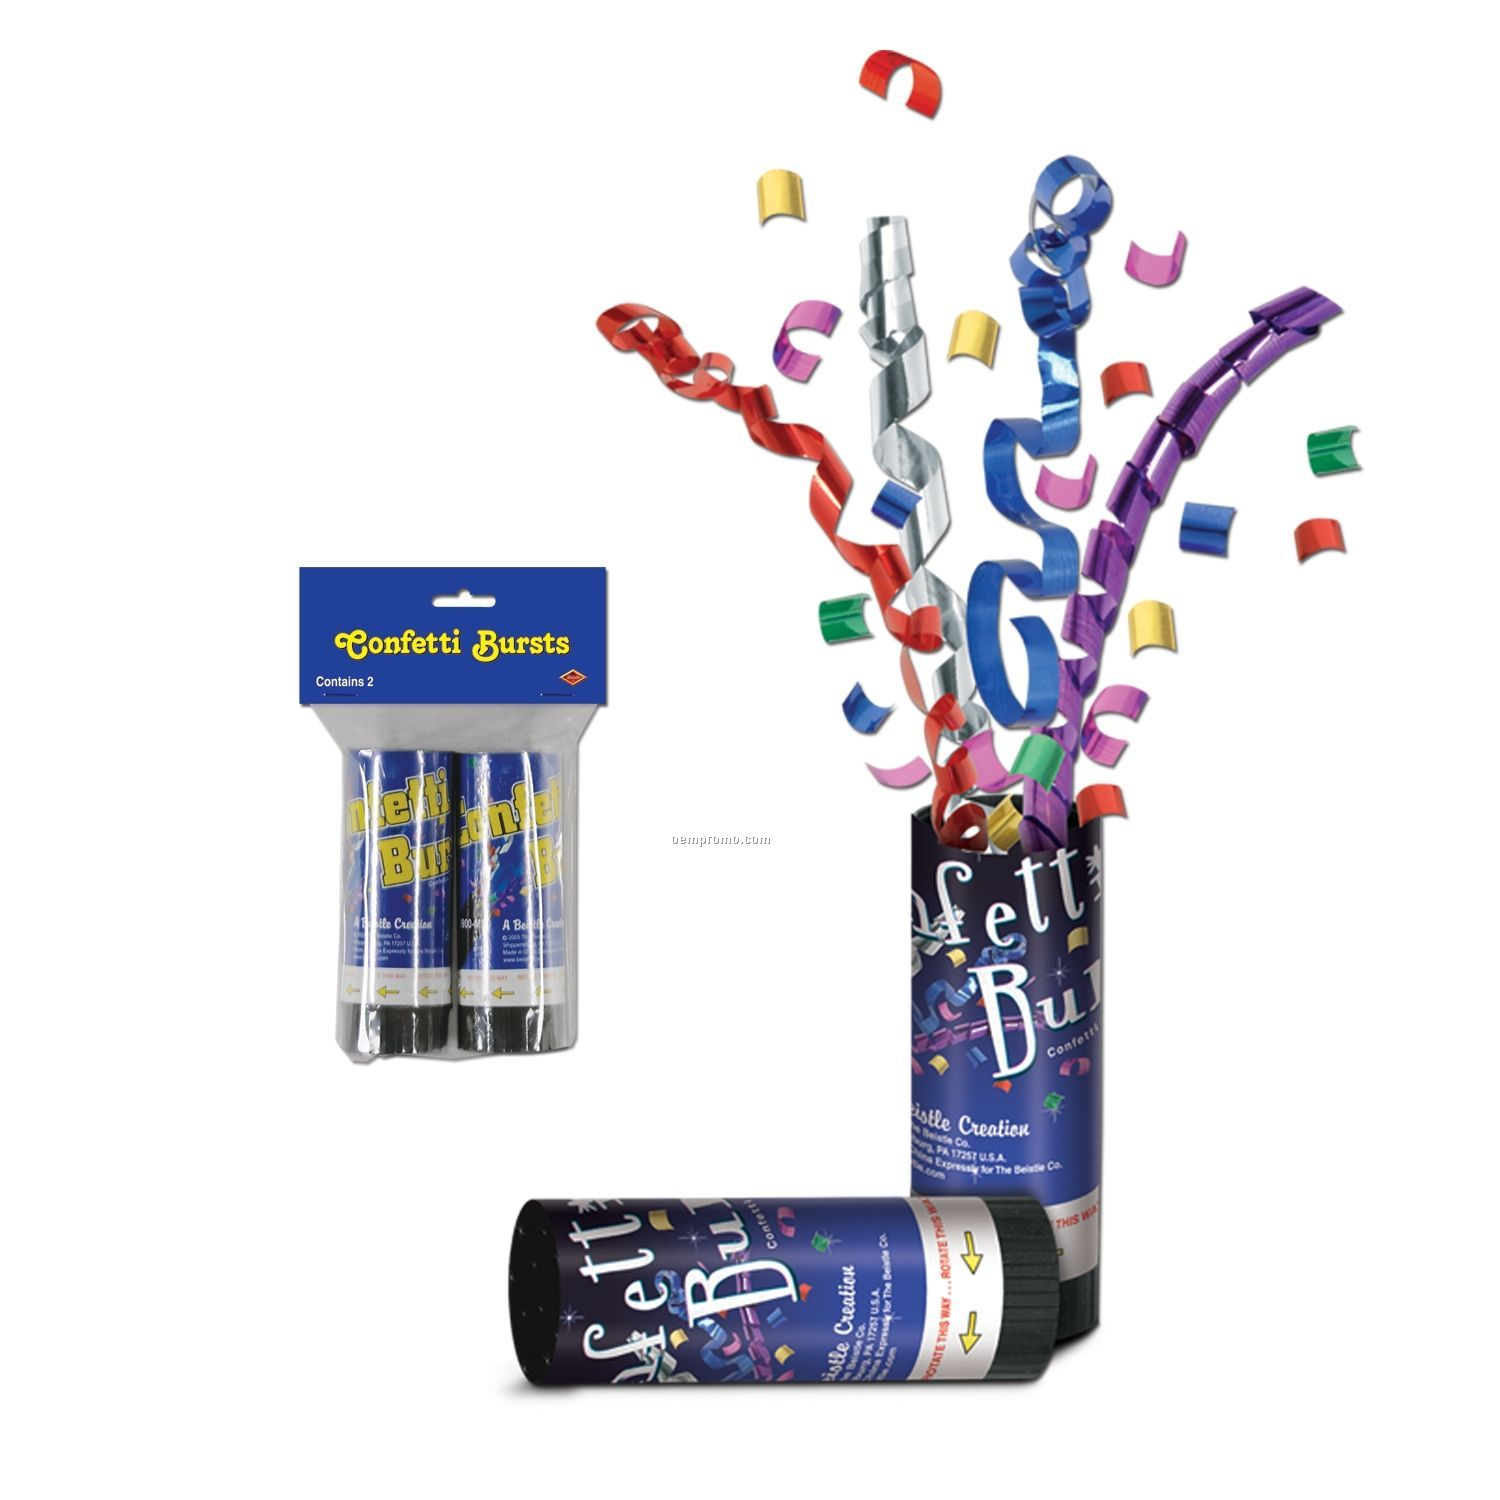 Packaged Confetti Bursts